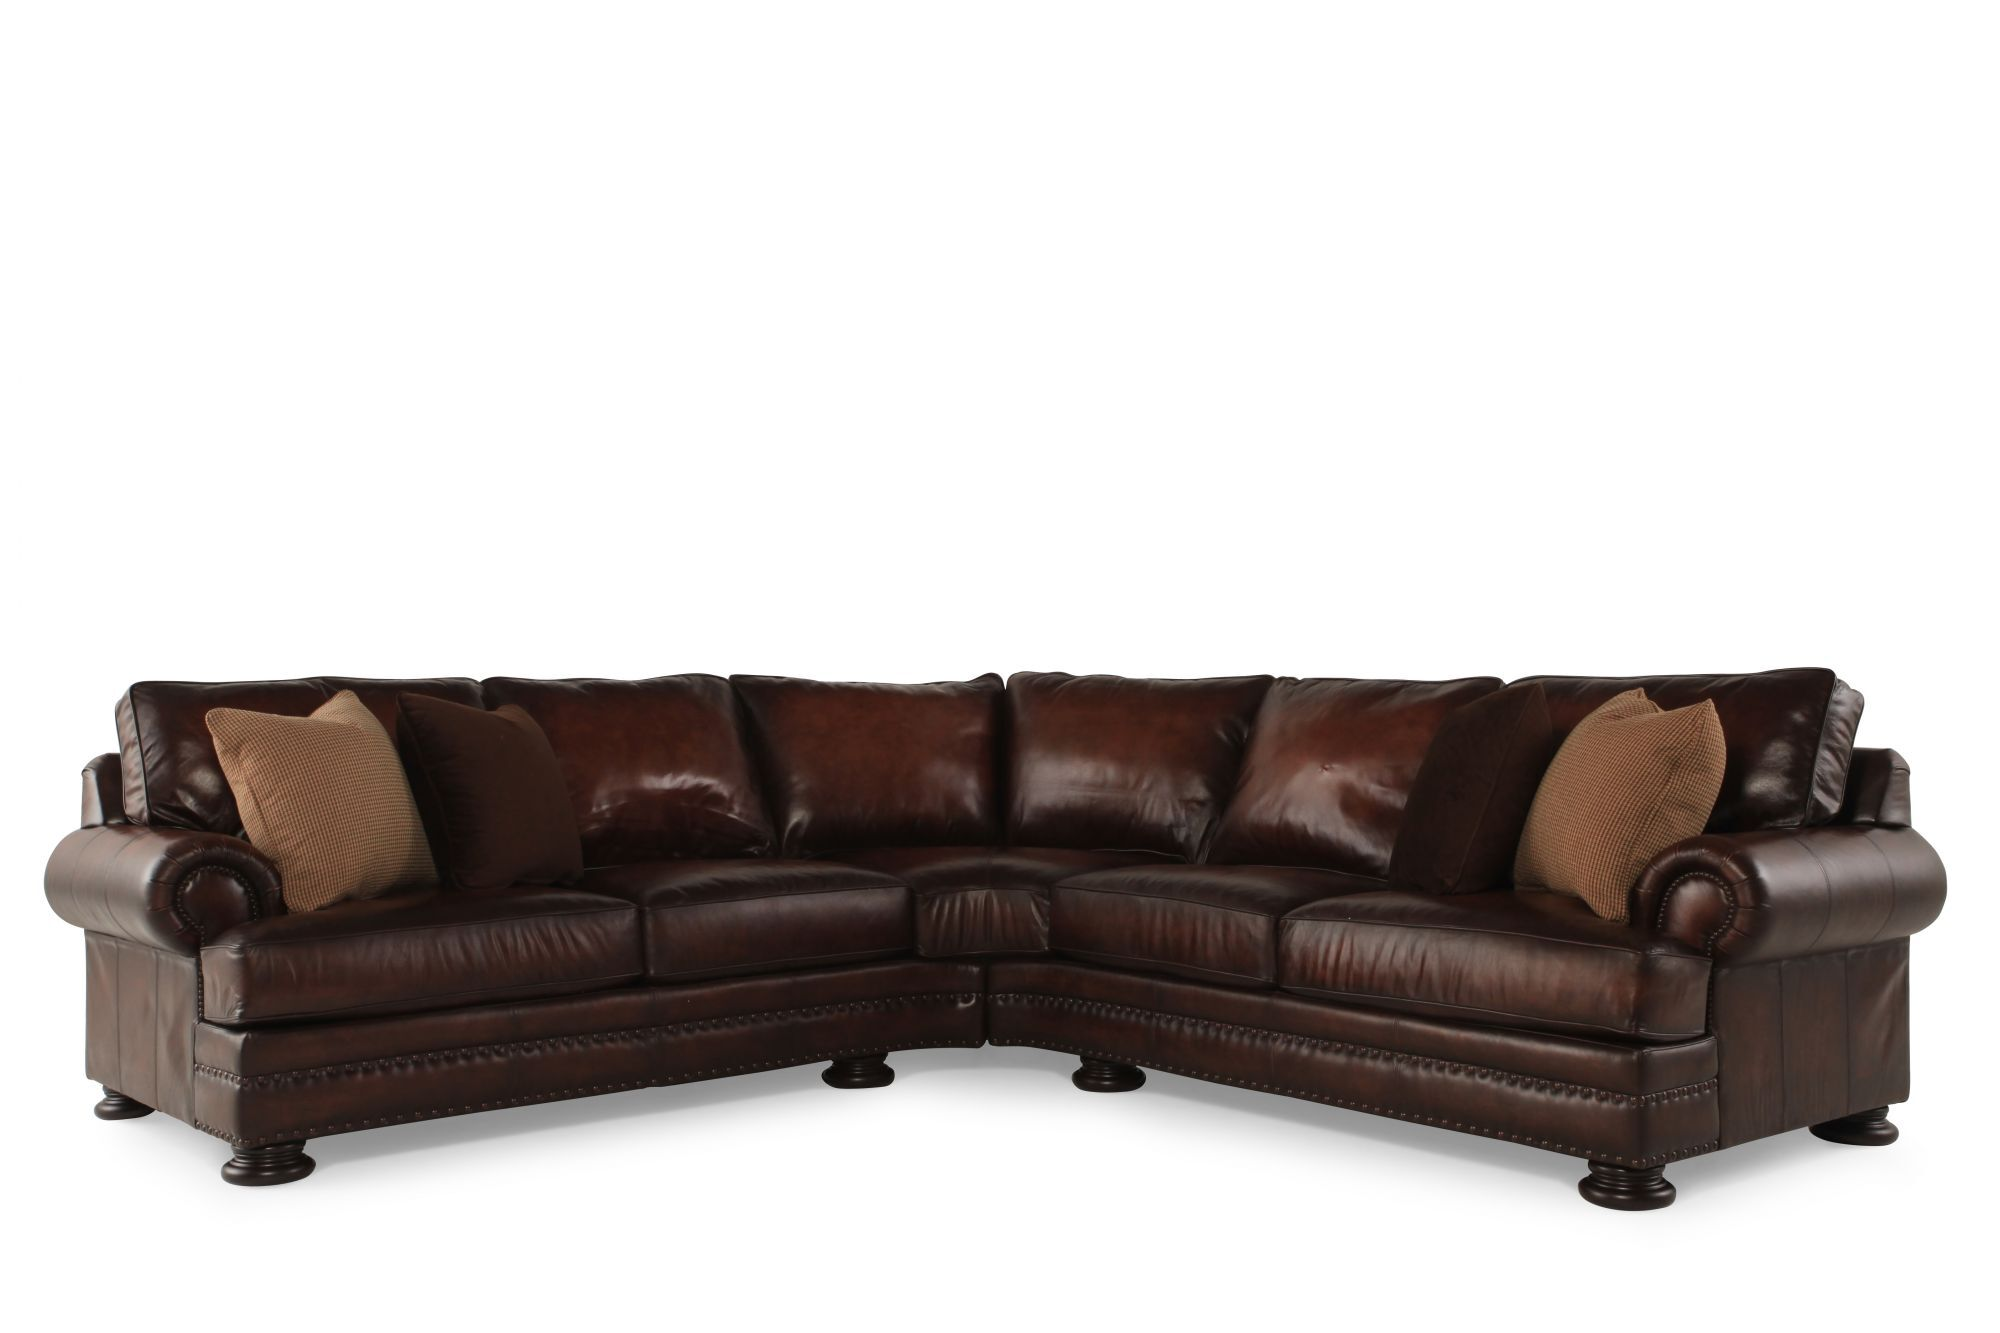 European Classic Nailhead Accented Leather 103u0026quot; Sectional In Brown